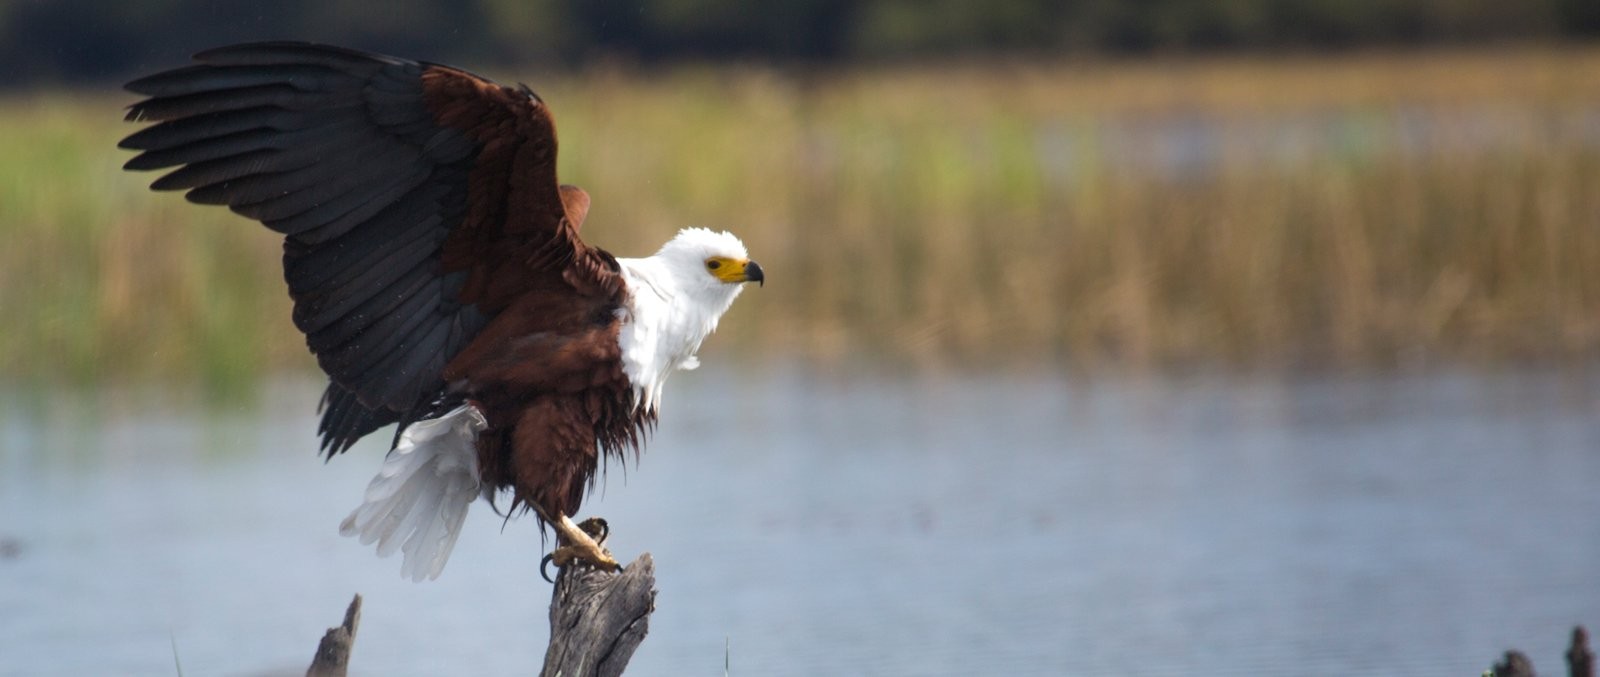 Fish eagle gets ready to take flight in the Okavango